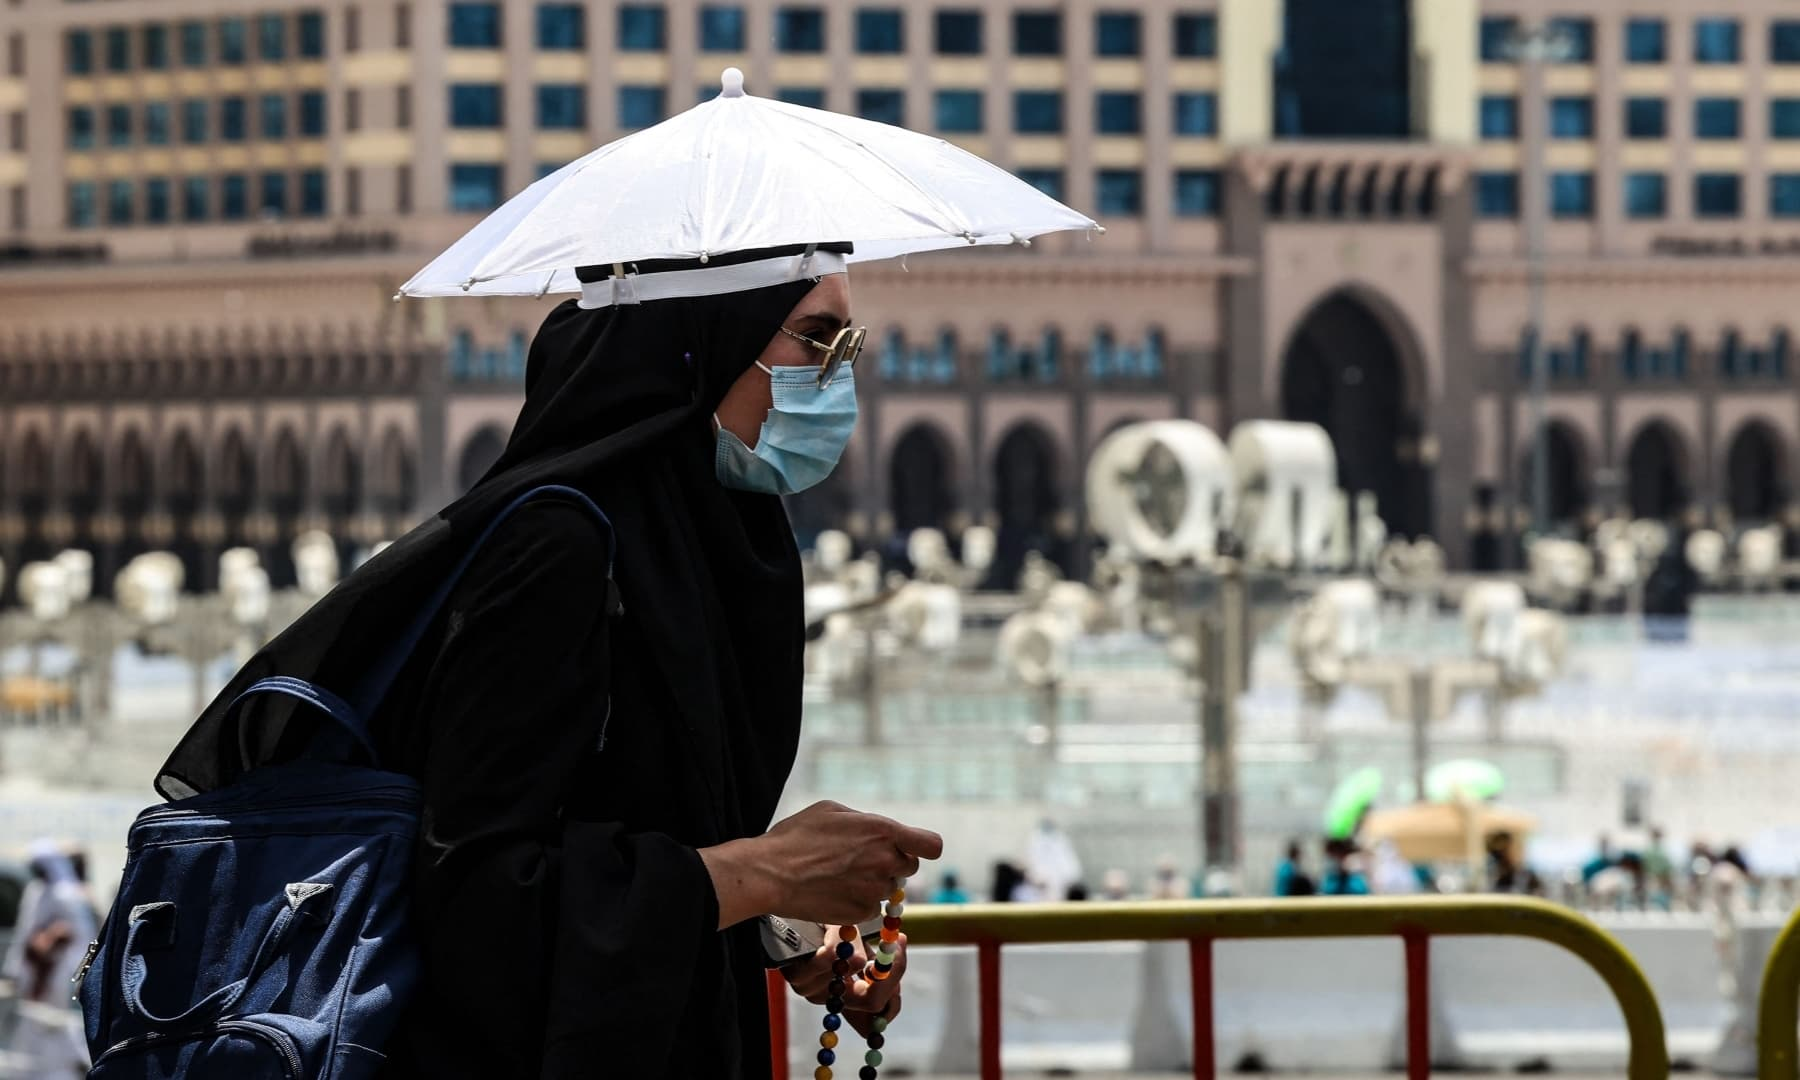 A pilgrim wears an umbrella hat to protect herself from the sun, in the holy city of Makkah, Saudi Arabia, July 16, 2021. — AFP